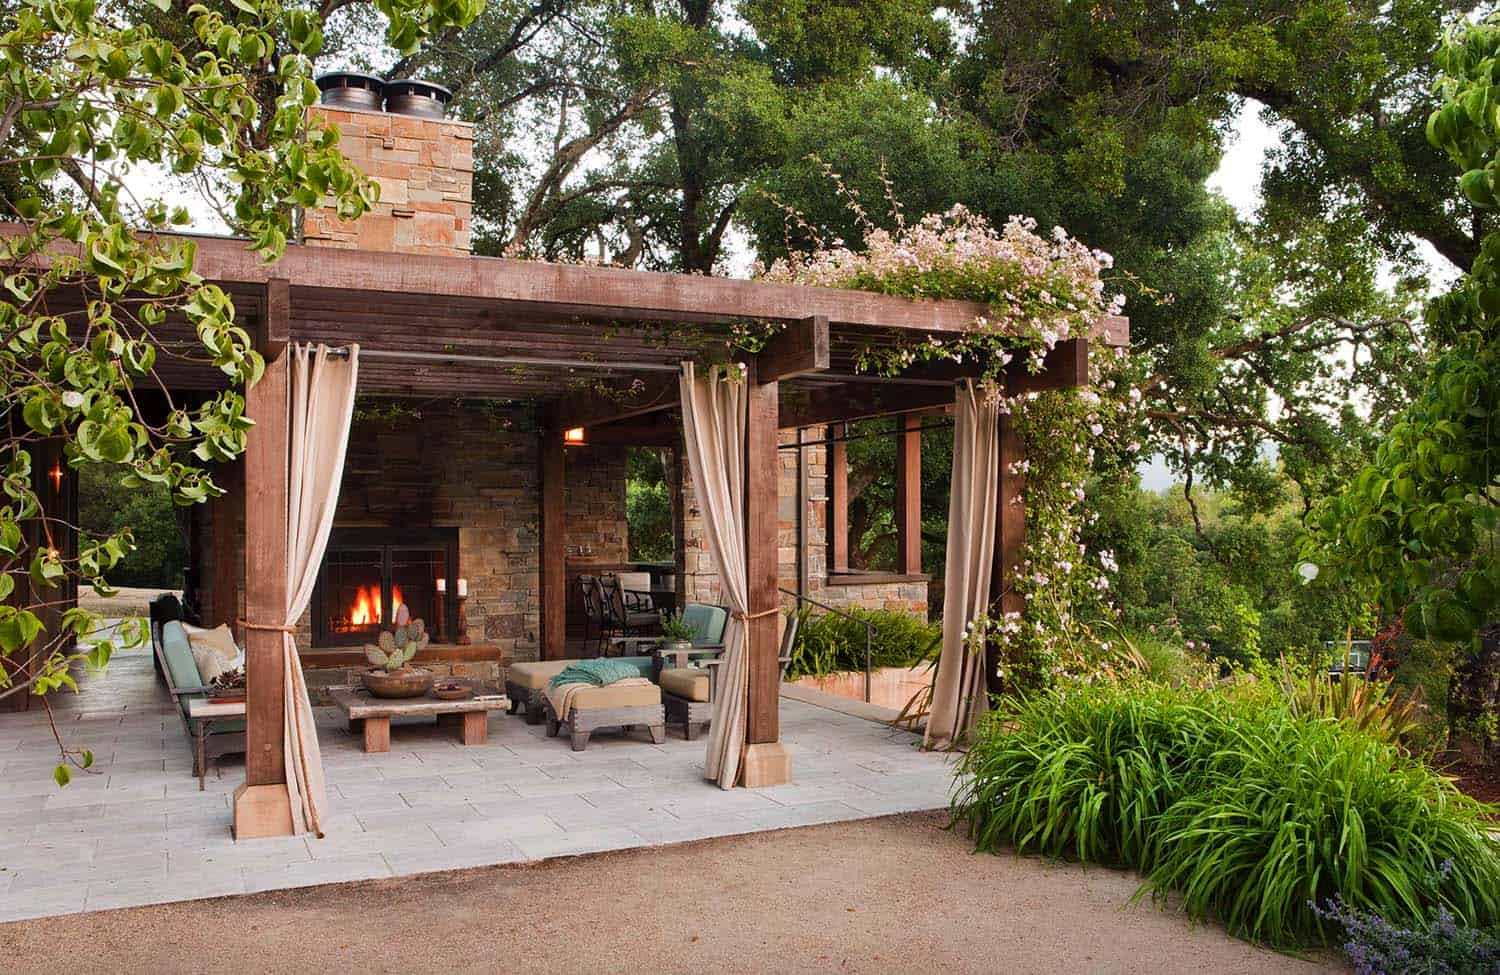 Private Lounging Space in backyard